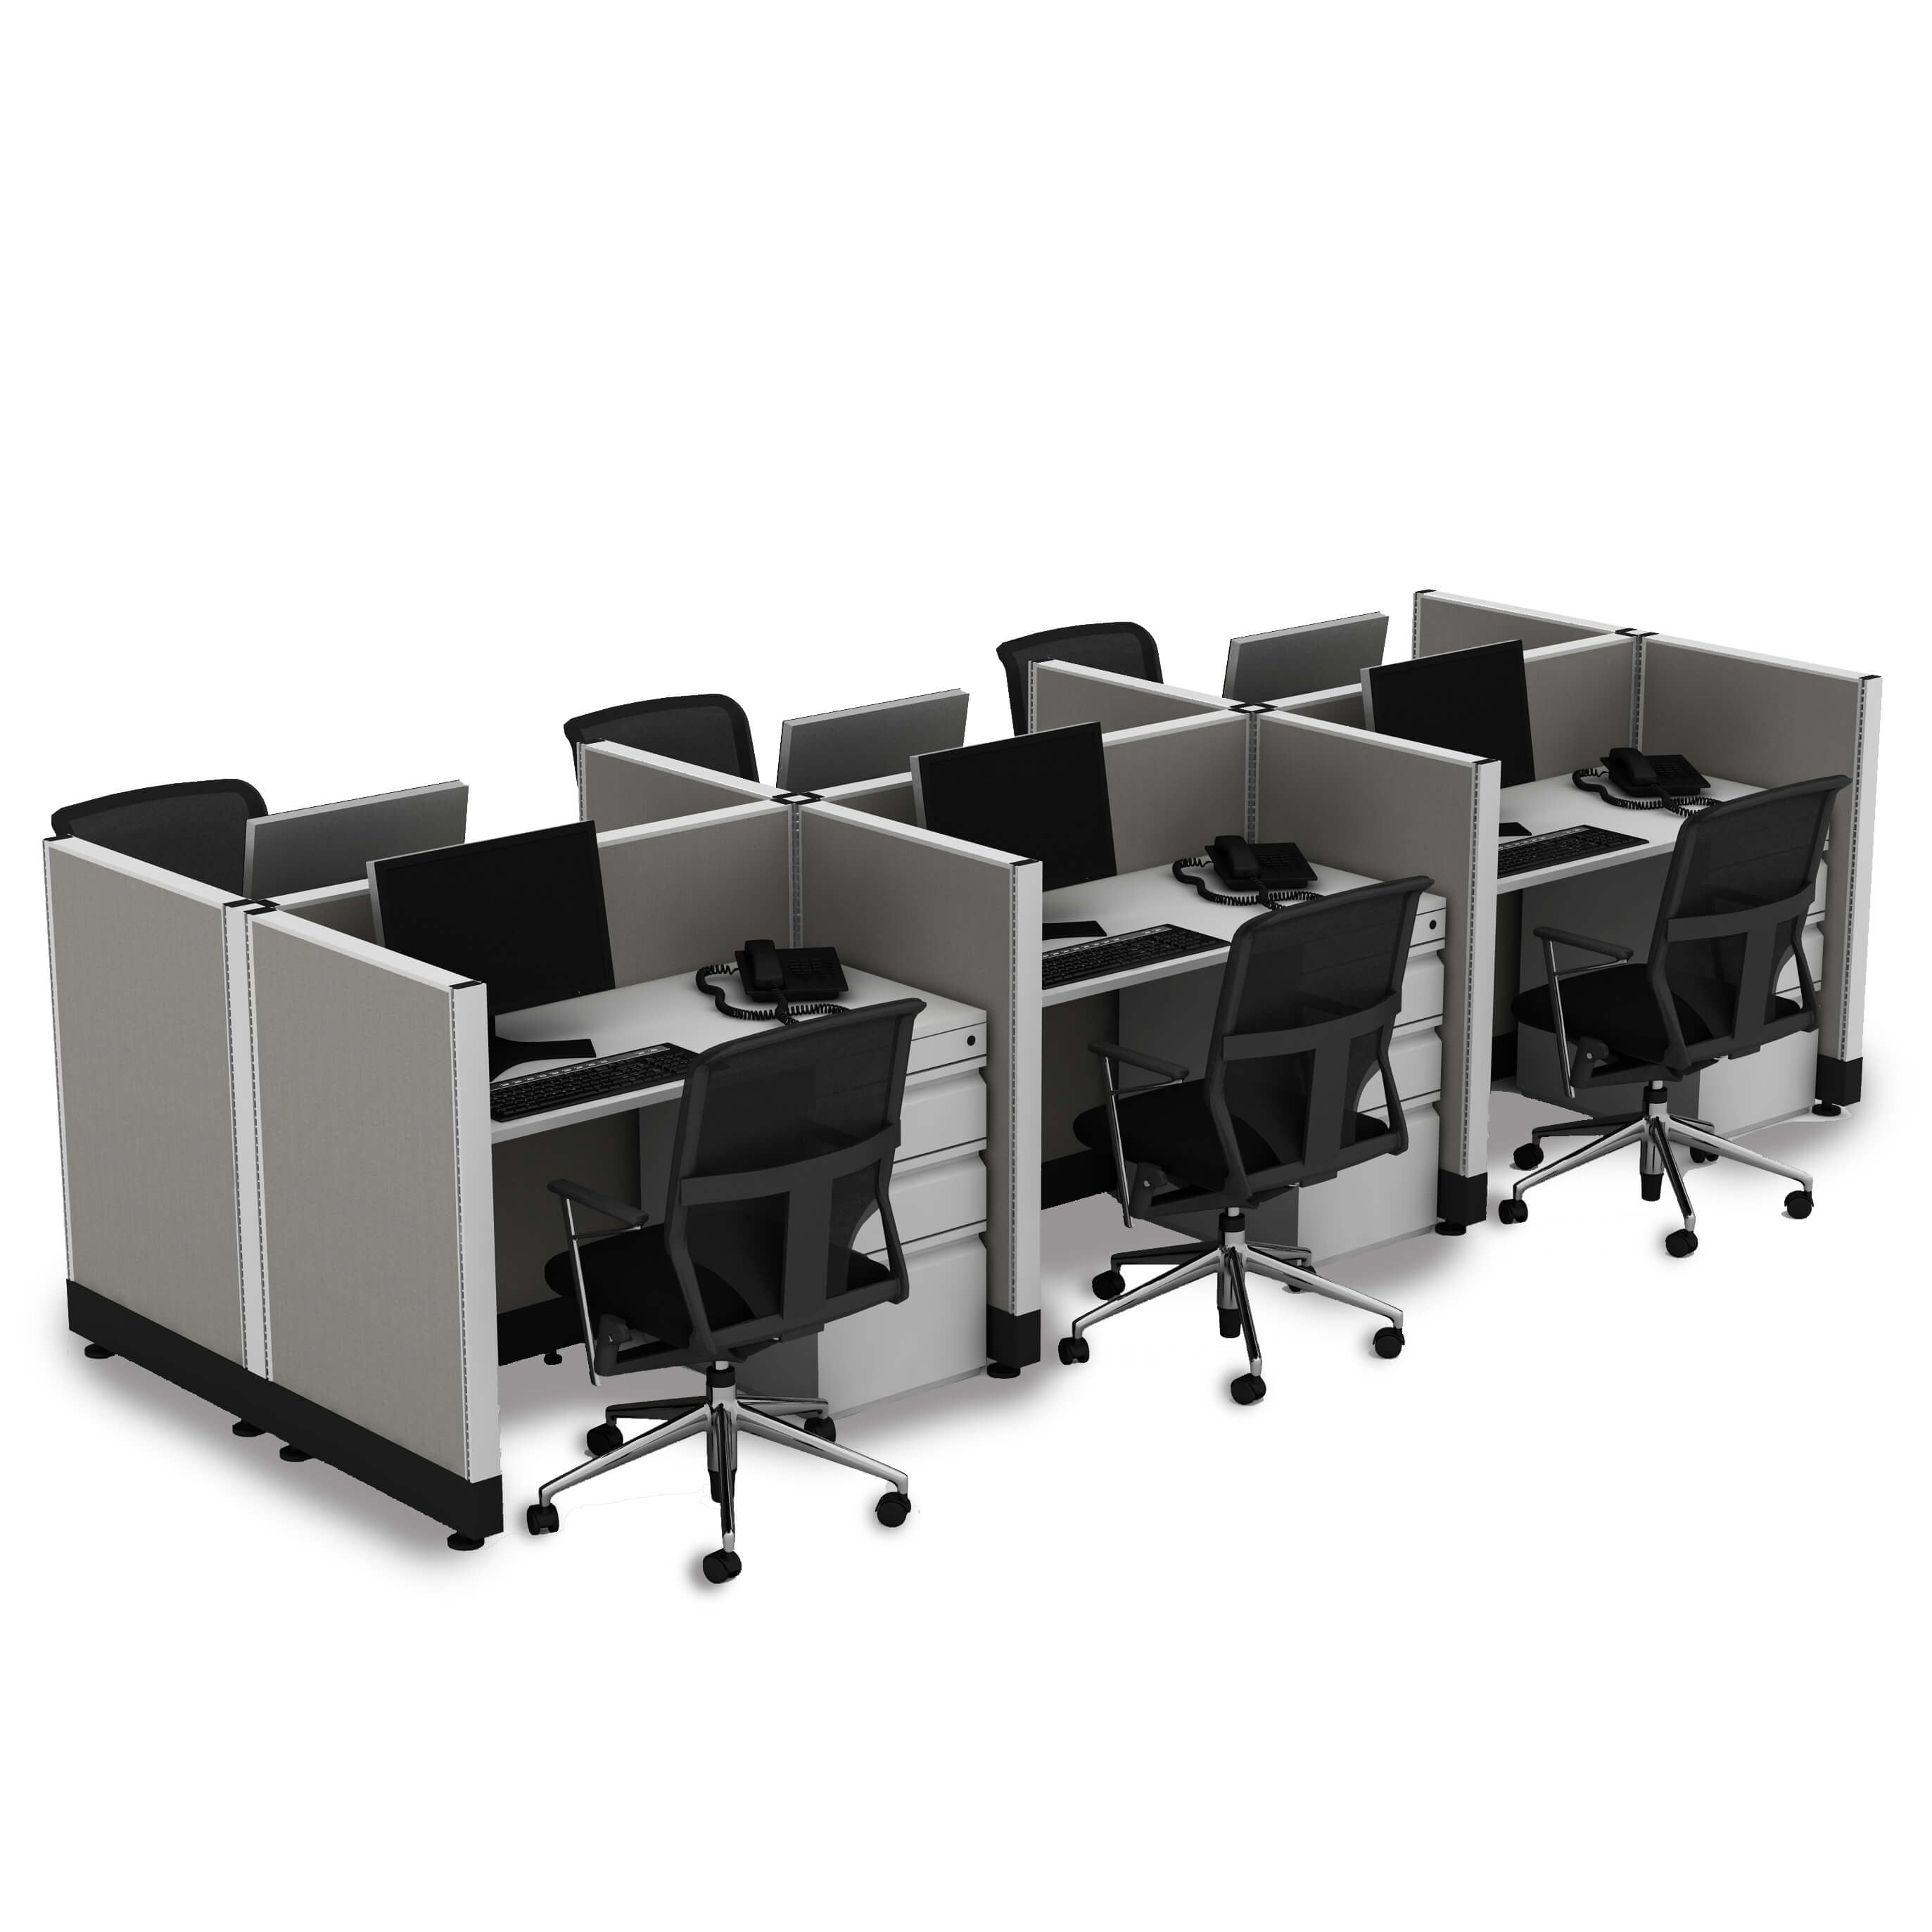 Small Office Cubicles 39H 6pack Cluster Unpowered (3x4 - White Desk White Paint - Assembled)